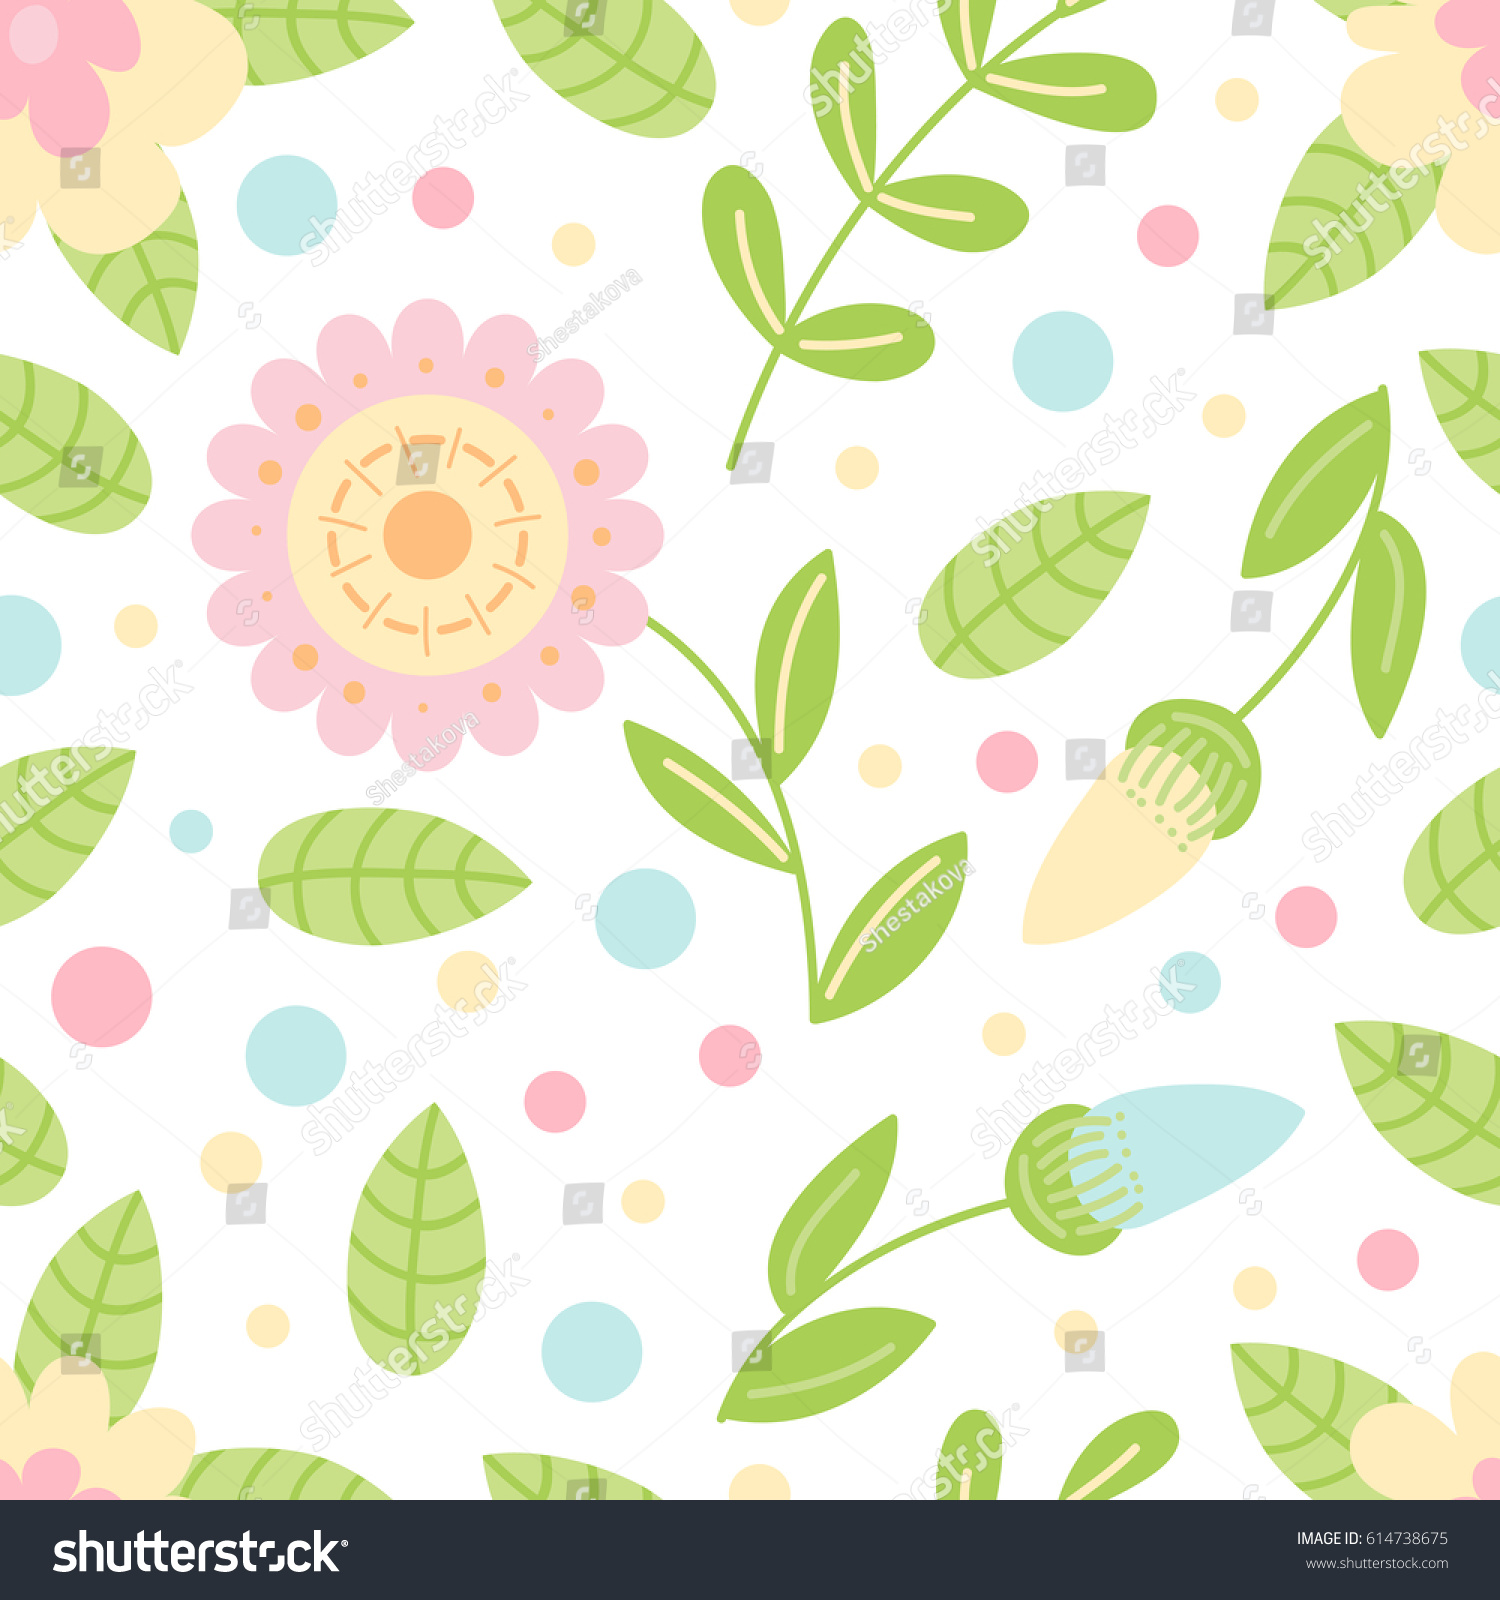 Floral Simple Vector Flower Seamless Pattern Stock Vector Royalty